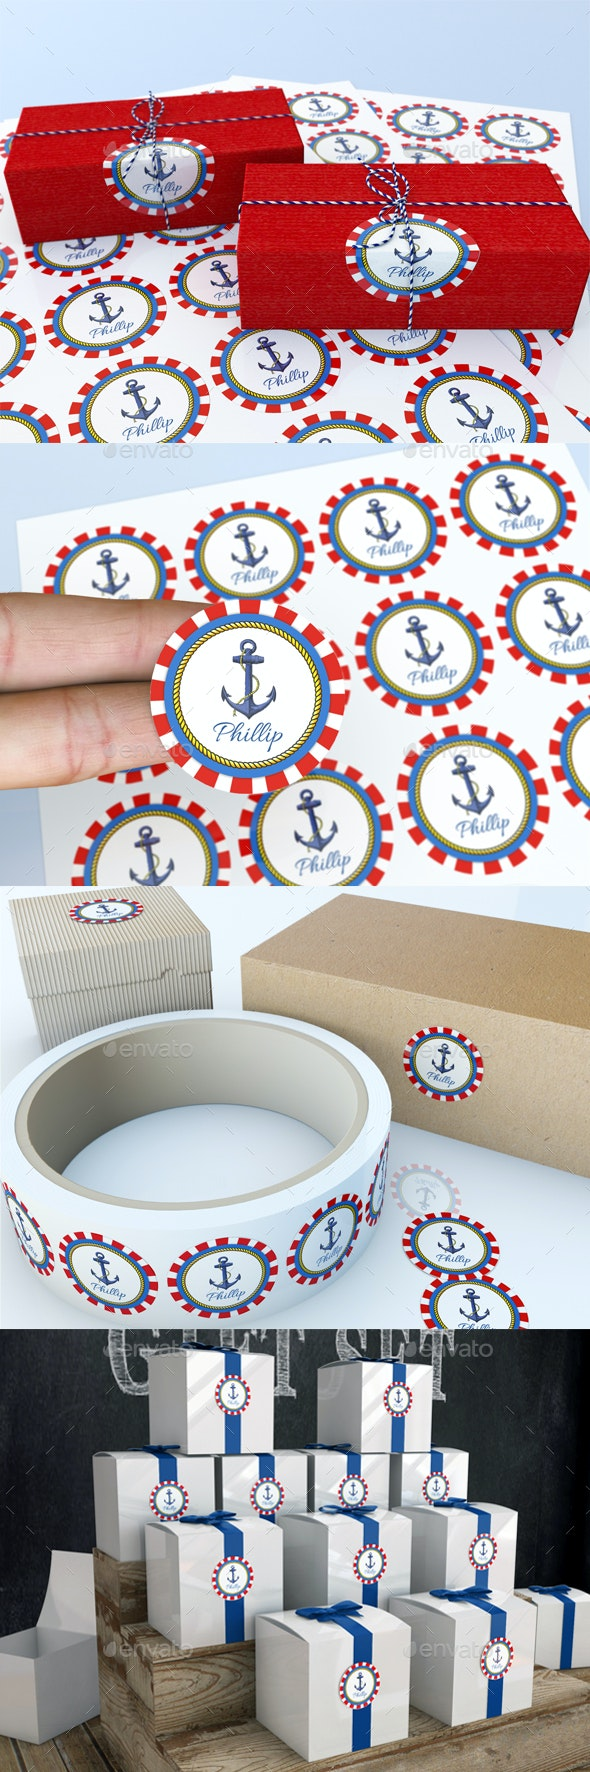 Round Circular Labels and Stickers Mock-Up - Signage Print